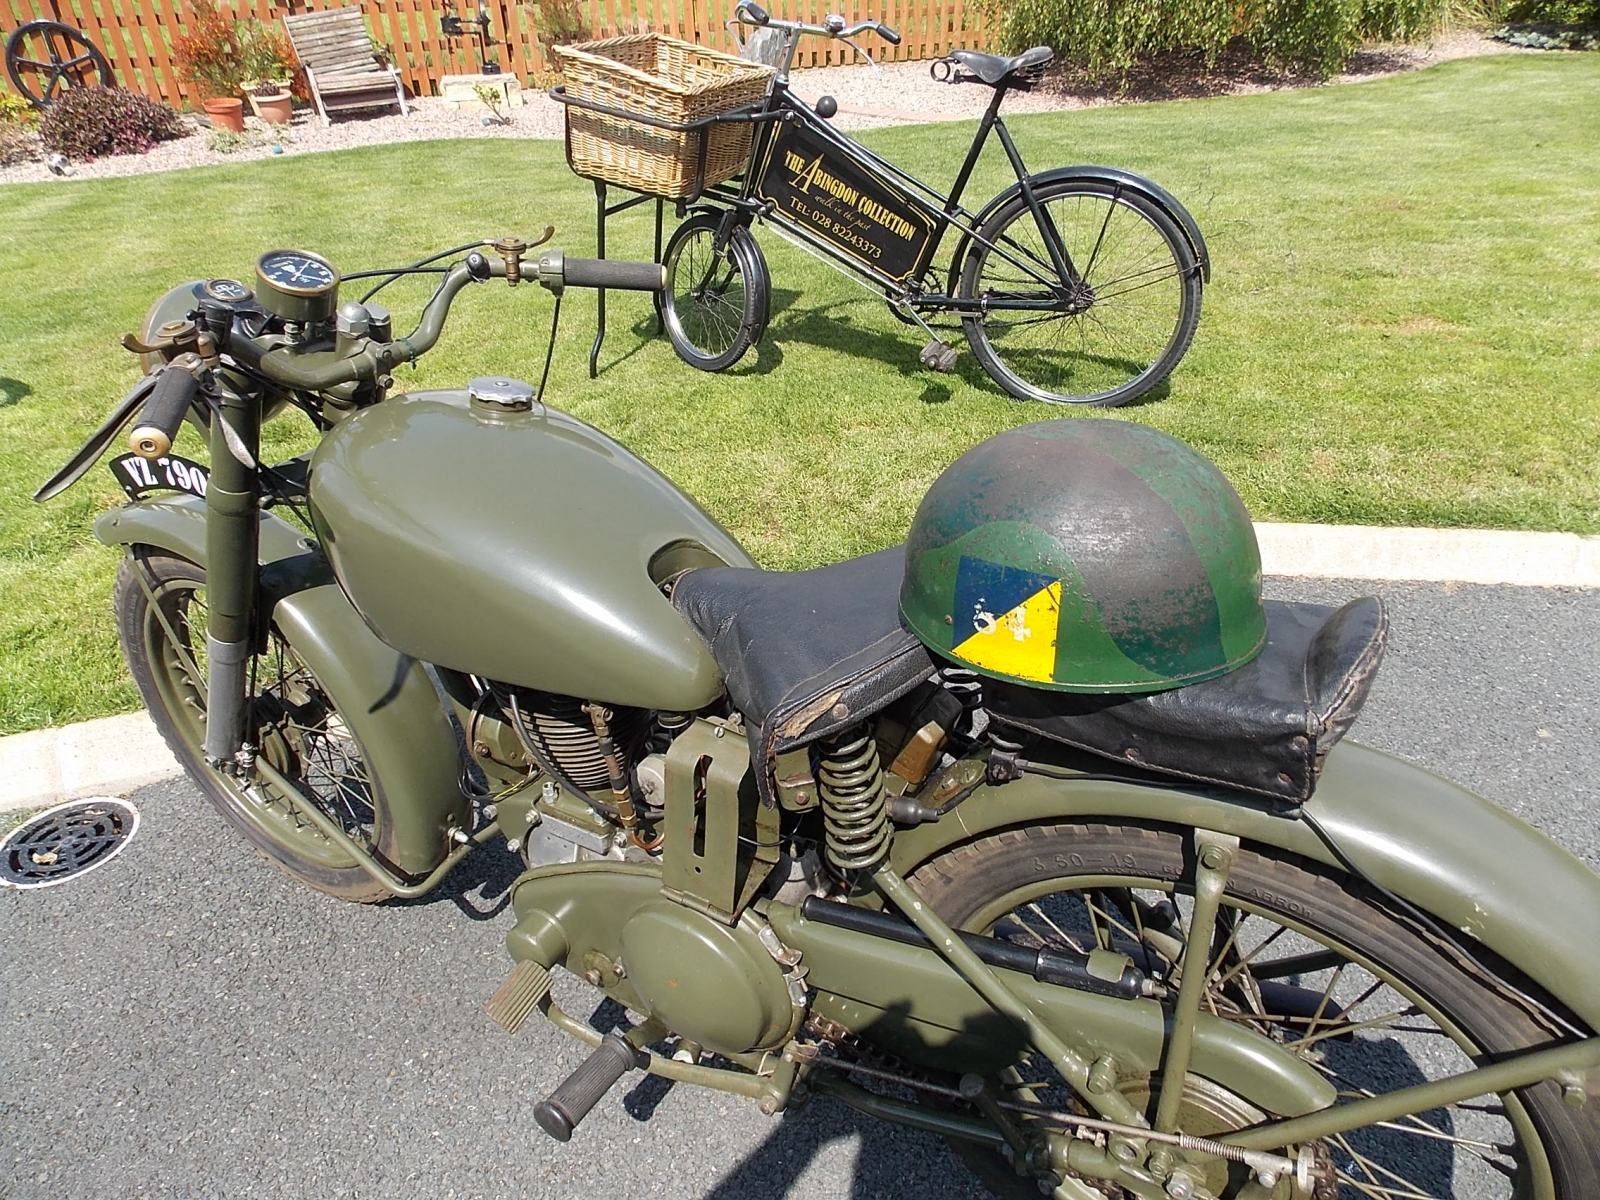 1942-Matchless-G3L-350cc-picture-6